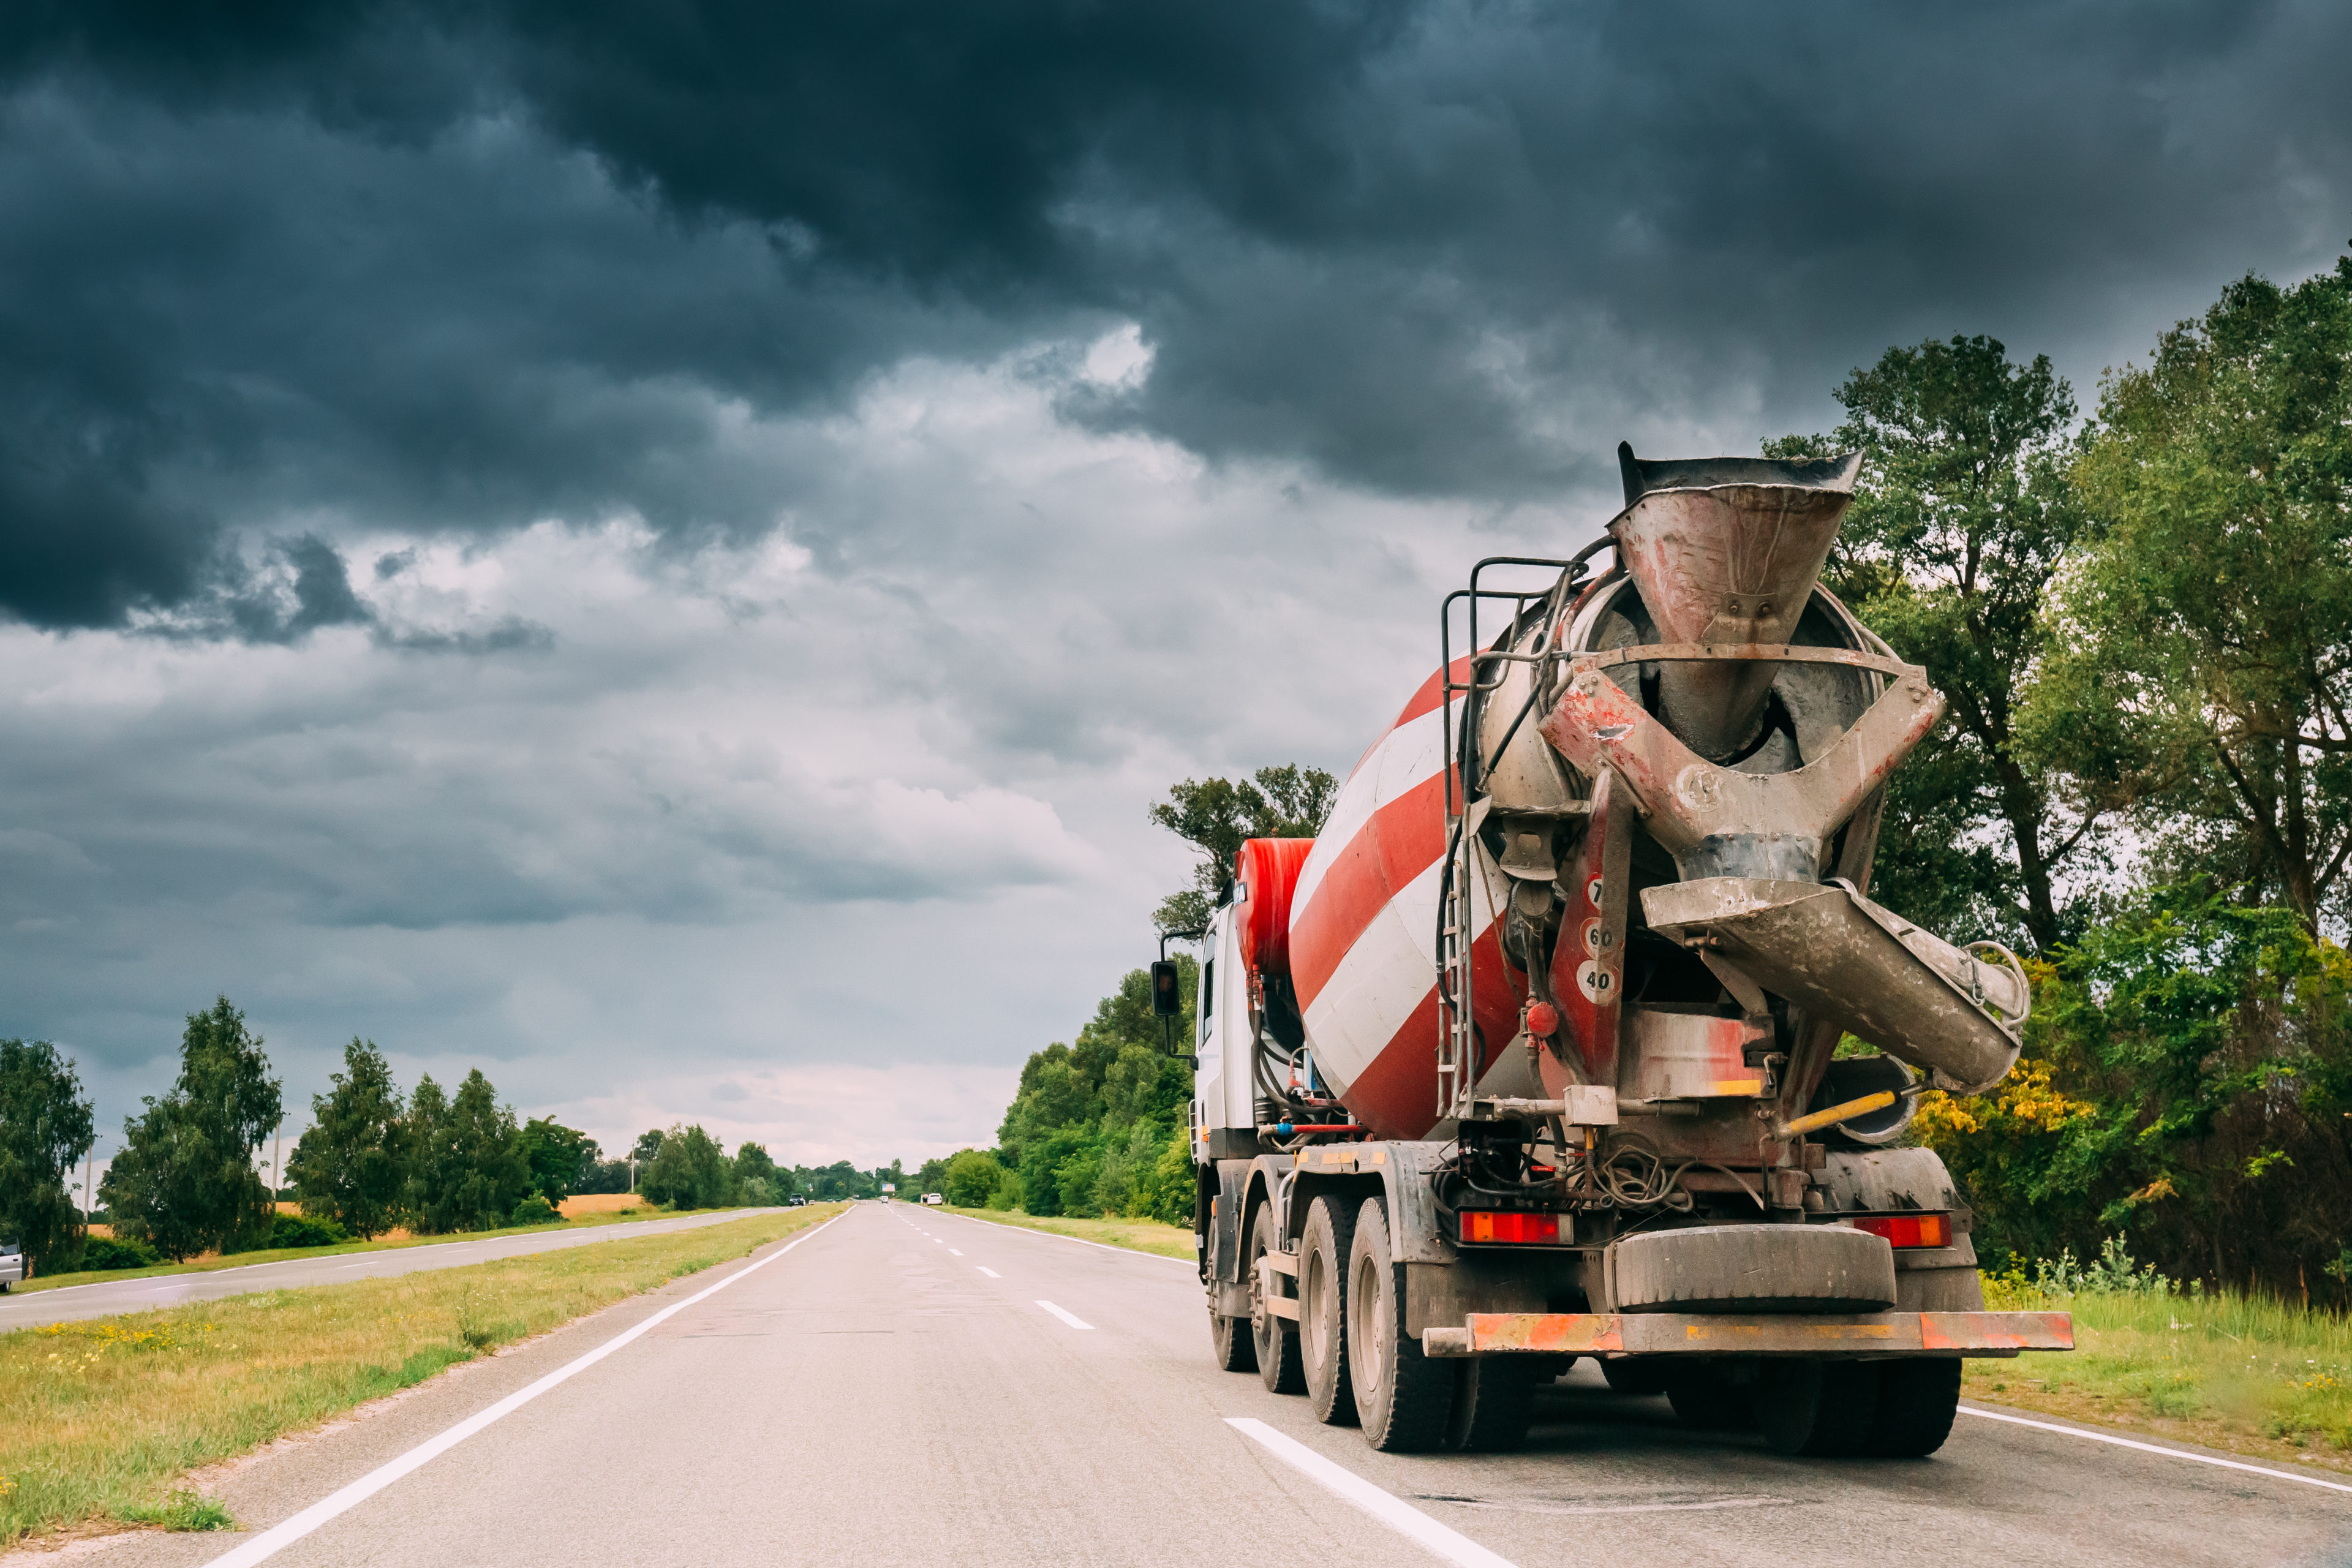 Special Concrete Transport Truck Unit In Motion On Country Road, Freeway In Europe. Asphalt Freeway, Motorway, Highway. Business Transportation And Development Concept